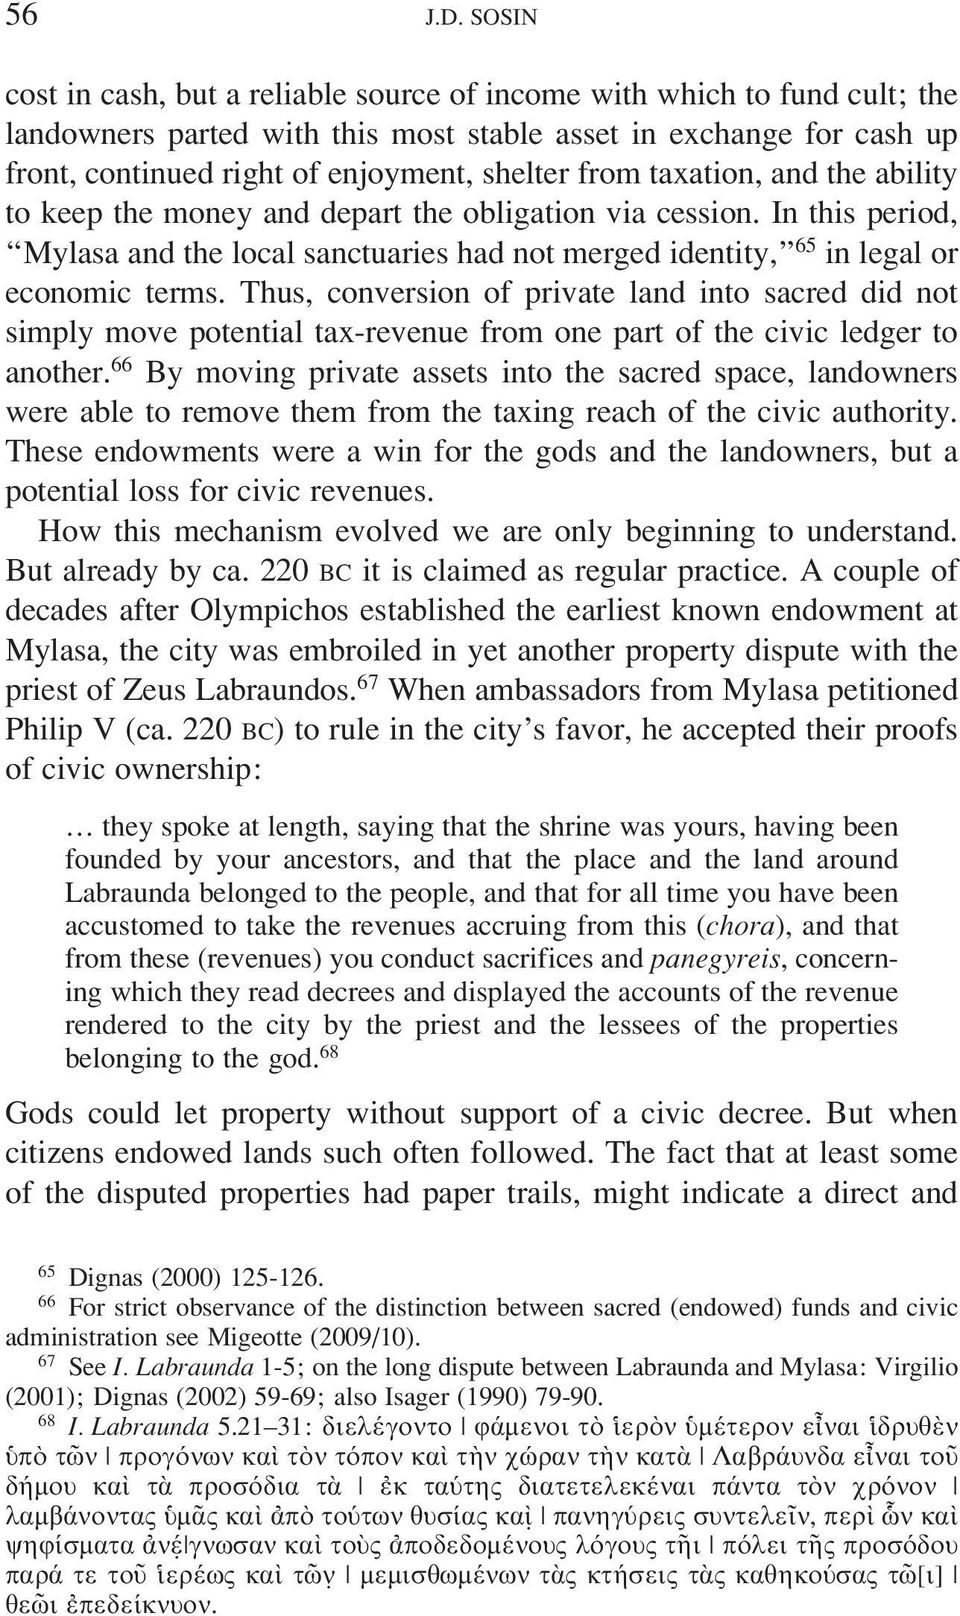 from taxation, and the ability to keep the money and depart the obligation via cession. In this period, Mylasa and the local sanctuaries had not merged identity, 65 in legal or economic terms.